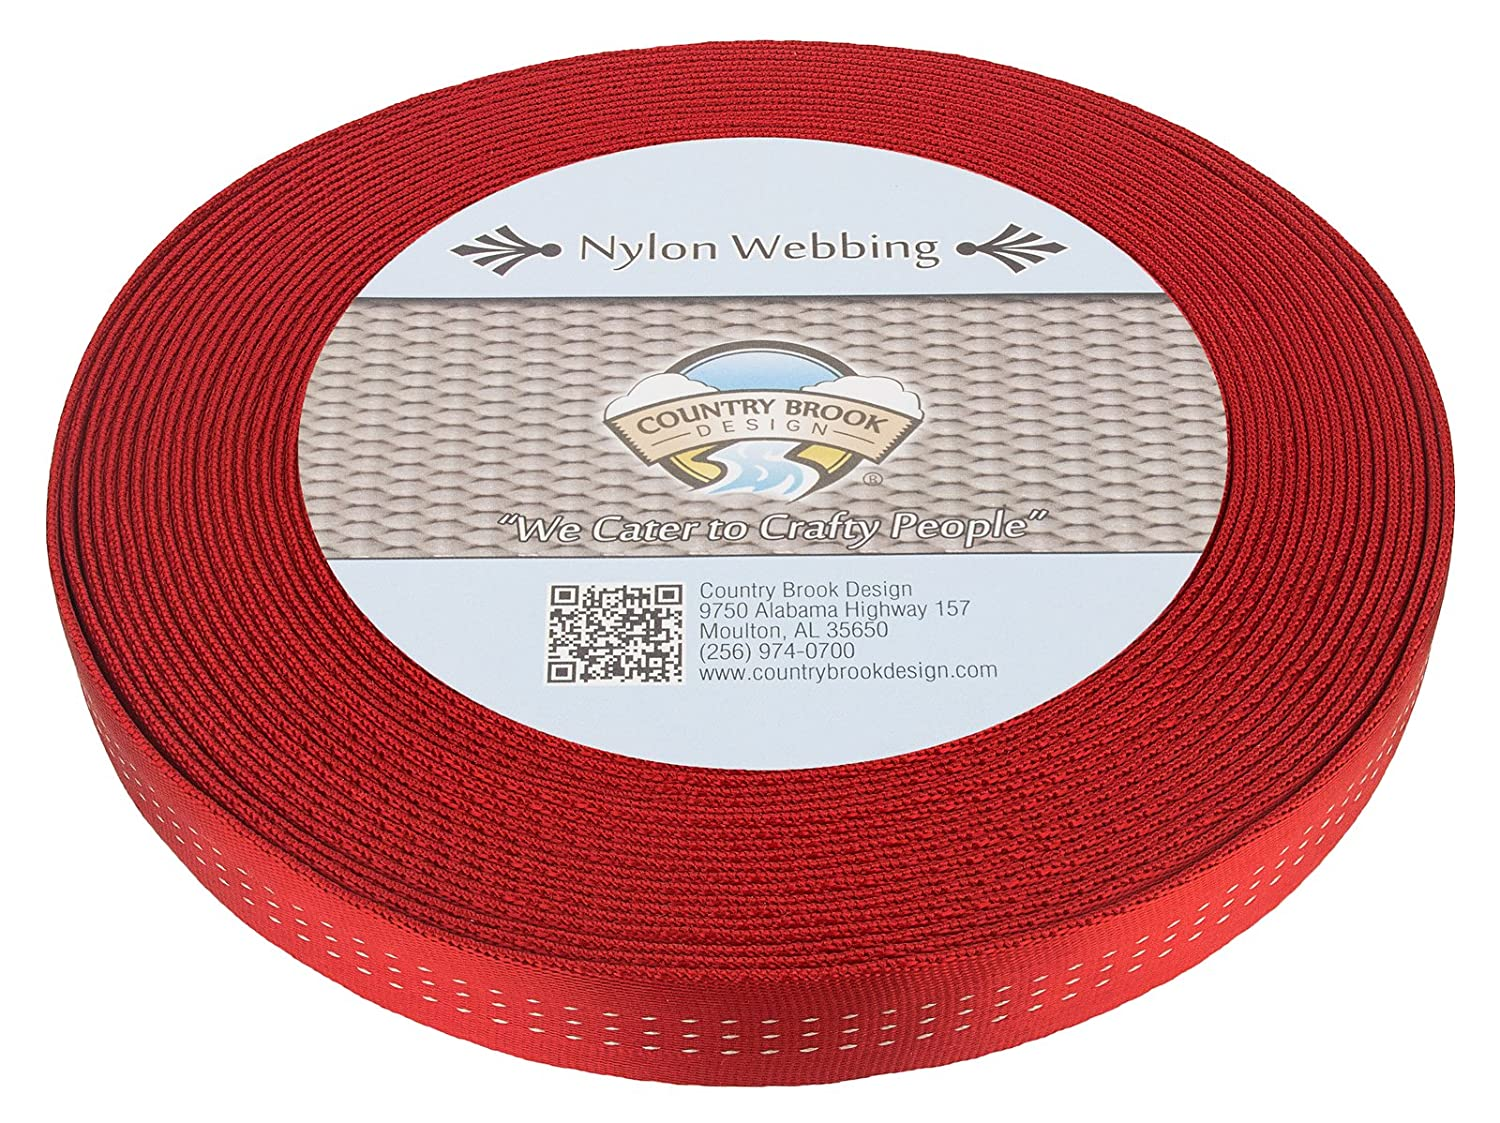 Country Brook Design 1 Inch Red Climbing Spec Tubular Nylon Webbing, 10 Yards 4336858530